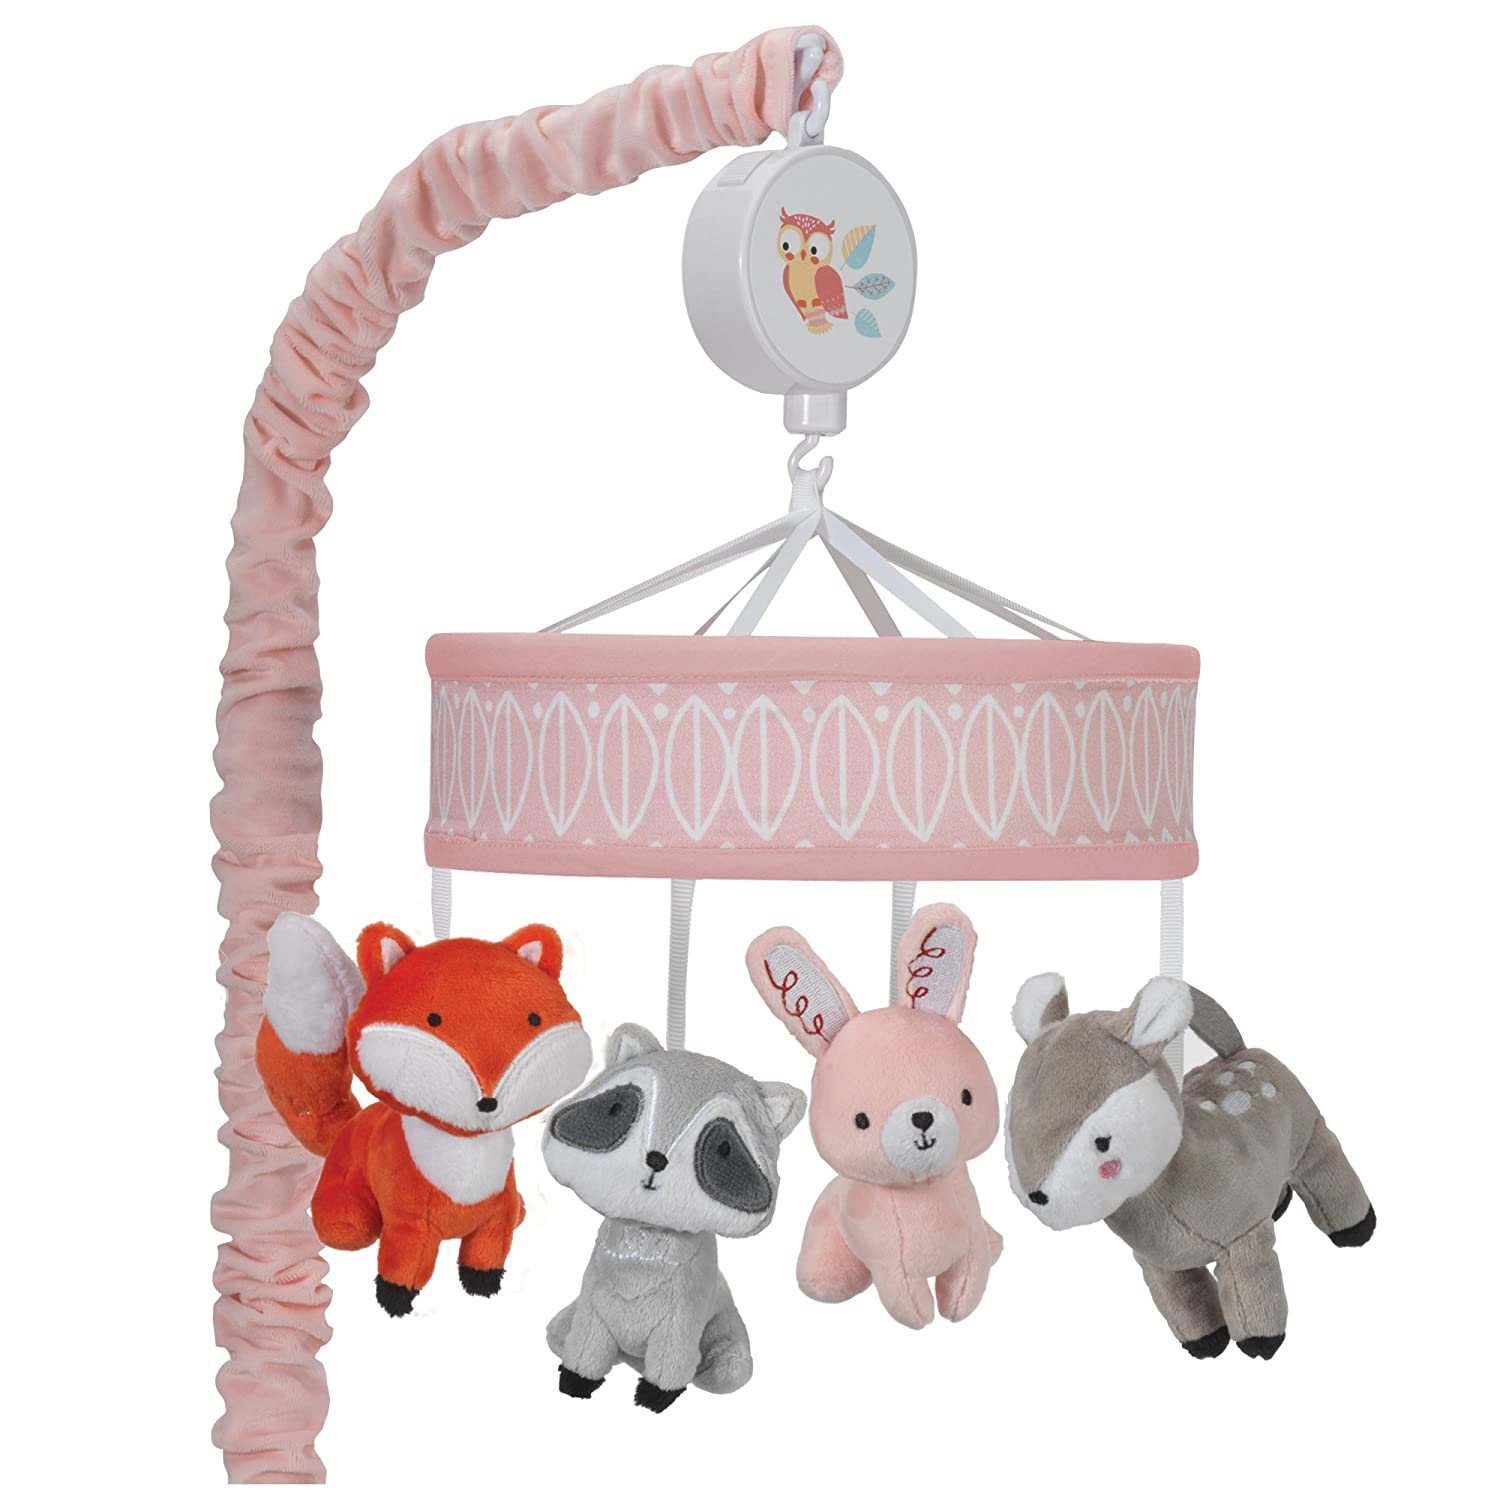 Lambs & Ivy Little Woodland Forest Animals Musical Mobile, Pink/White 698018